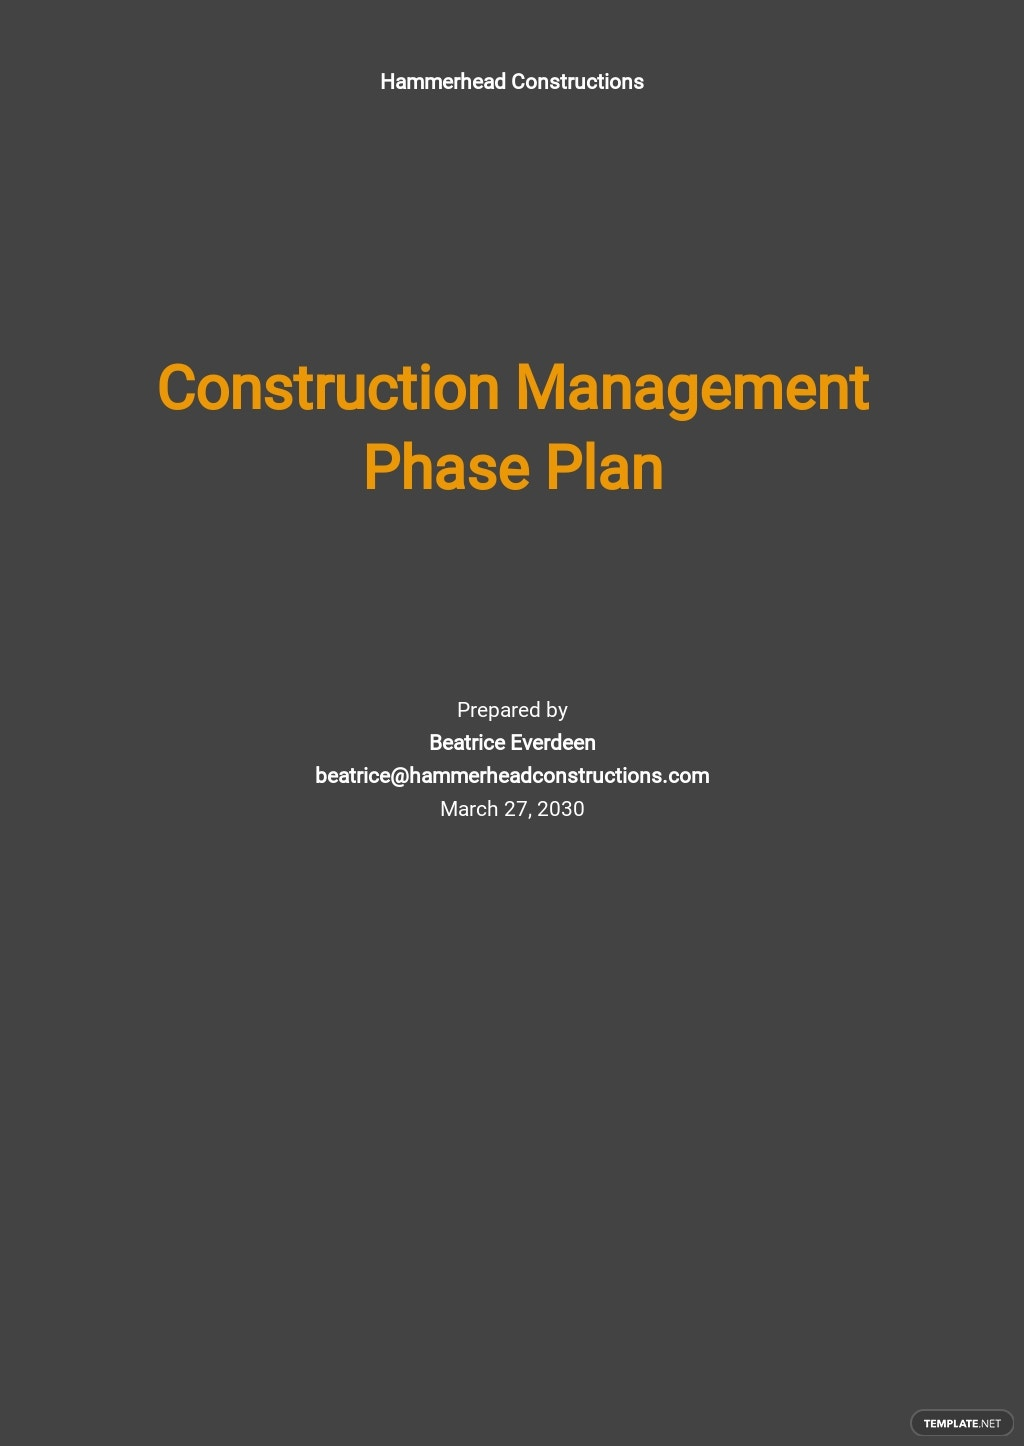 Construction Management Phase Plan Template.jpe